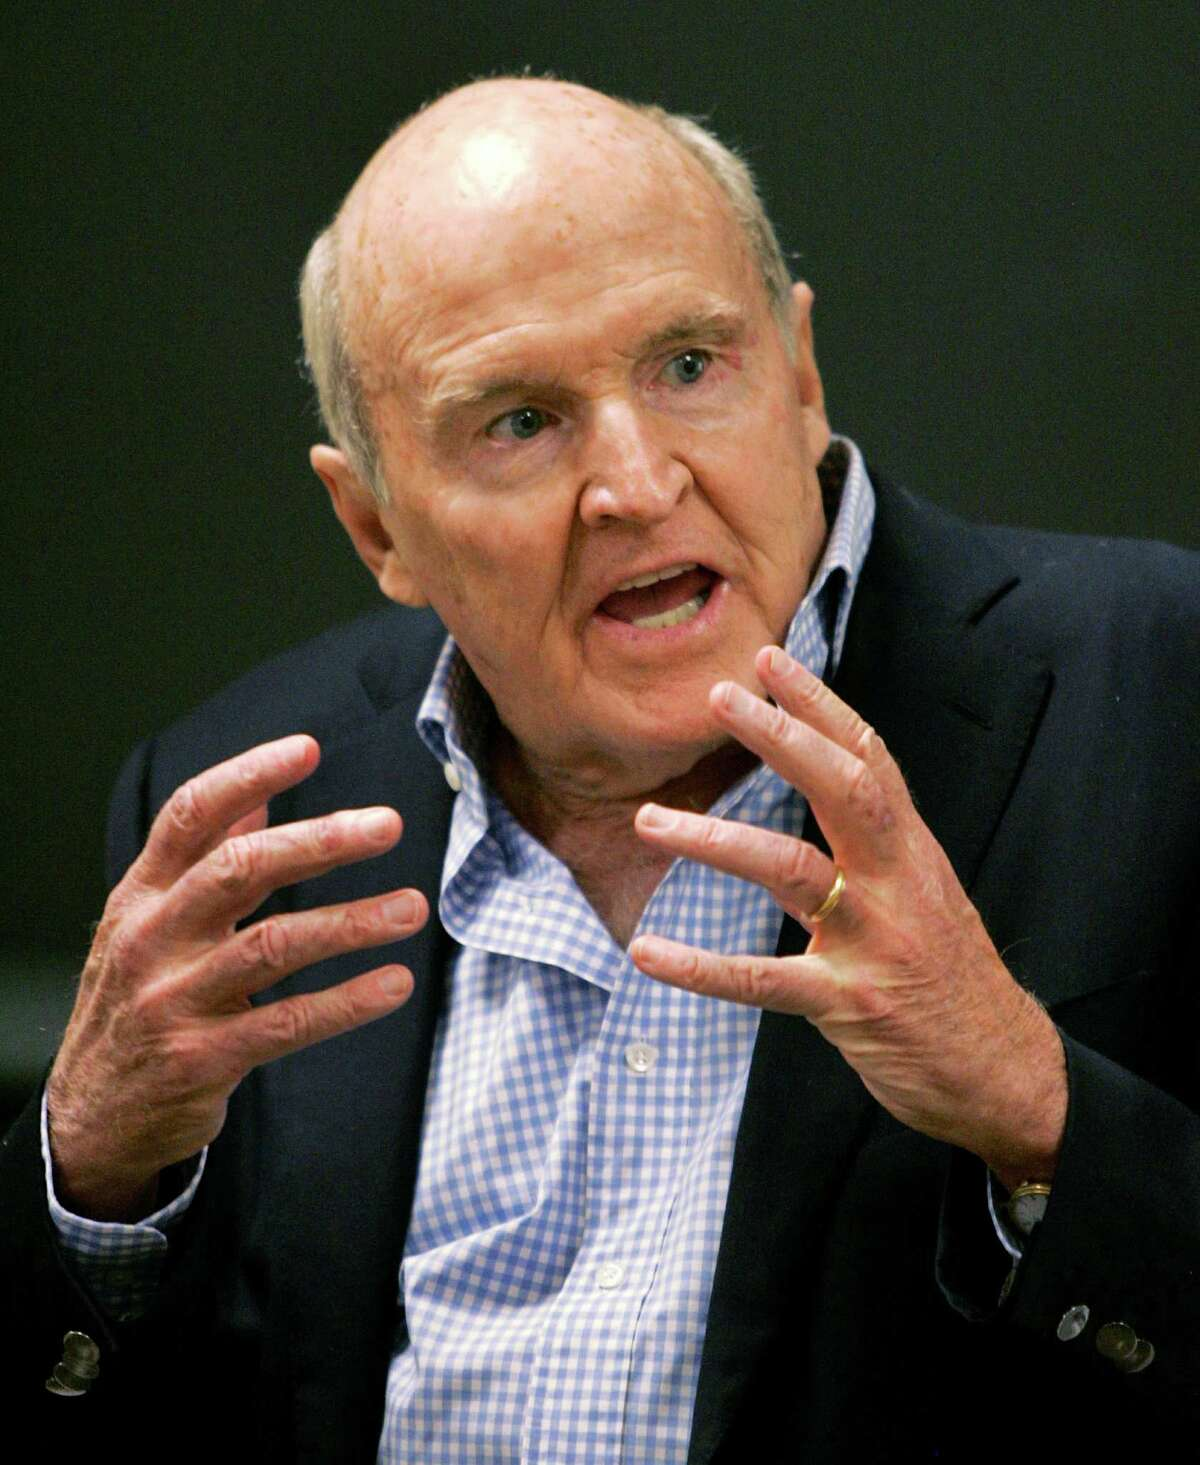 ** FILE ** Former General Electric CEO Jack Welch addresses students at the Massachusetts Institute of Technology in Cambridge, Mass. in this Sept. 27, 2006 file photo. Welch backed away Thursday from comments he made the previous day criticizing his successor for missing earnings targets.(AP Photo/Elise Amendola, file)